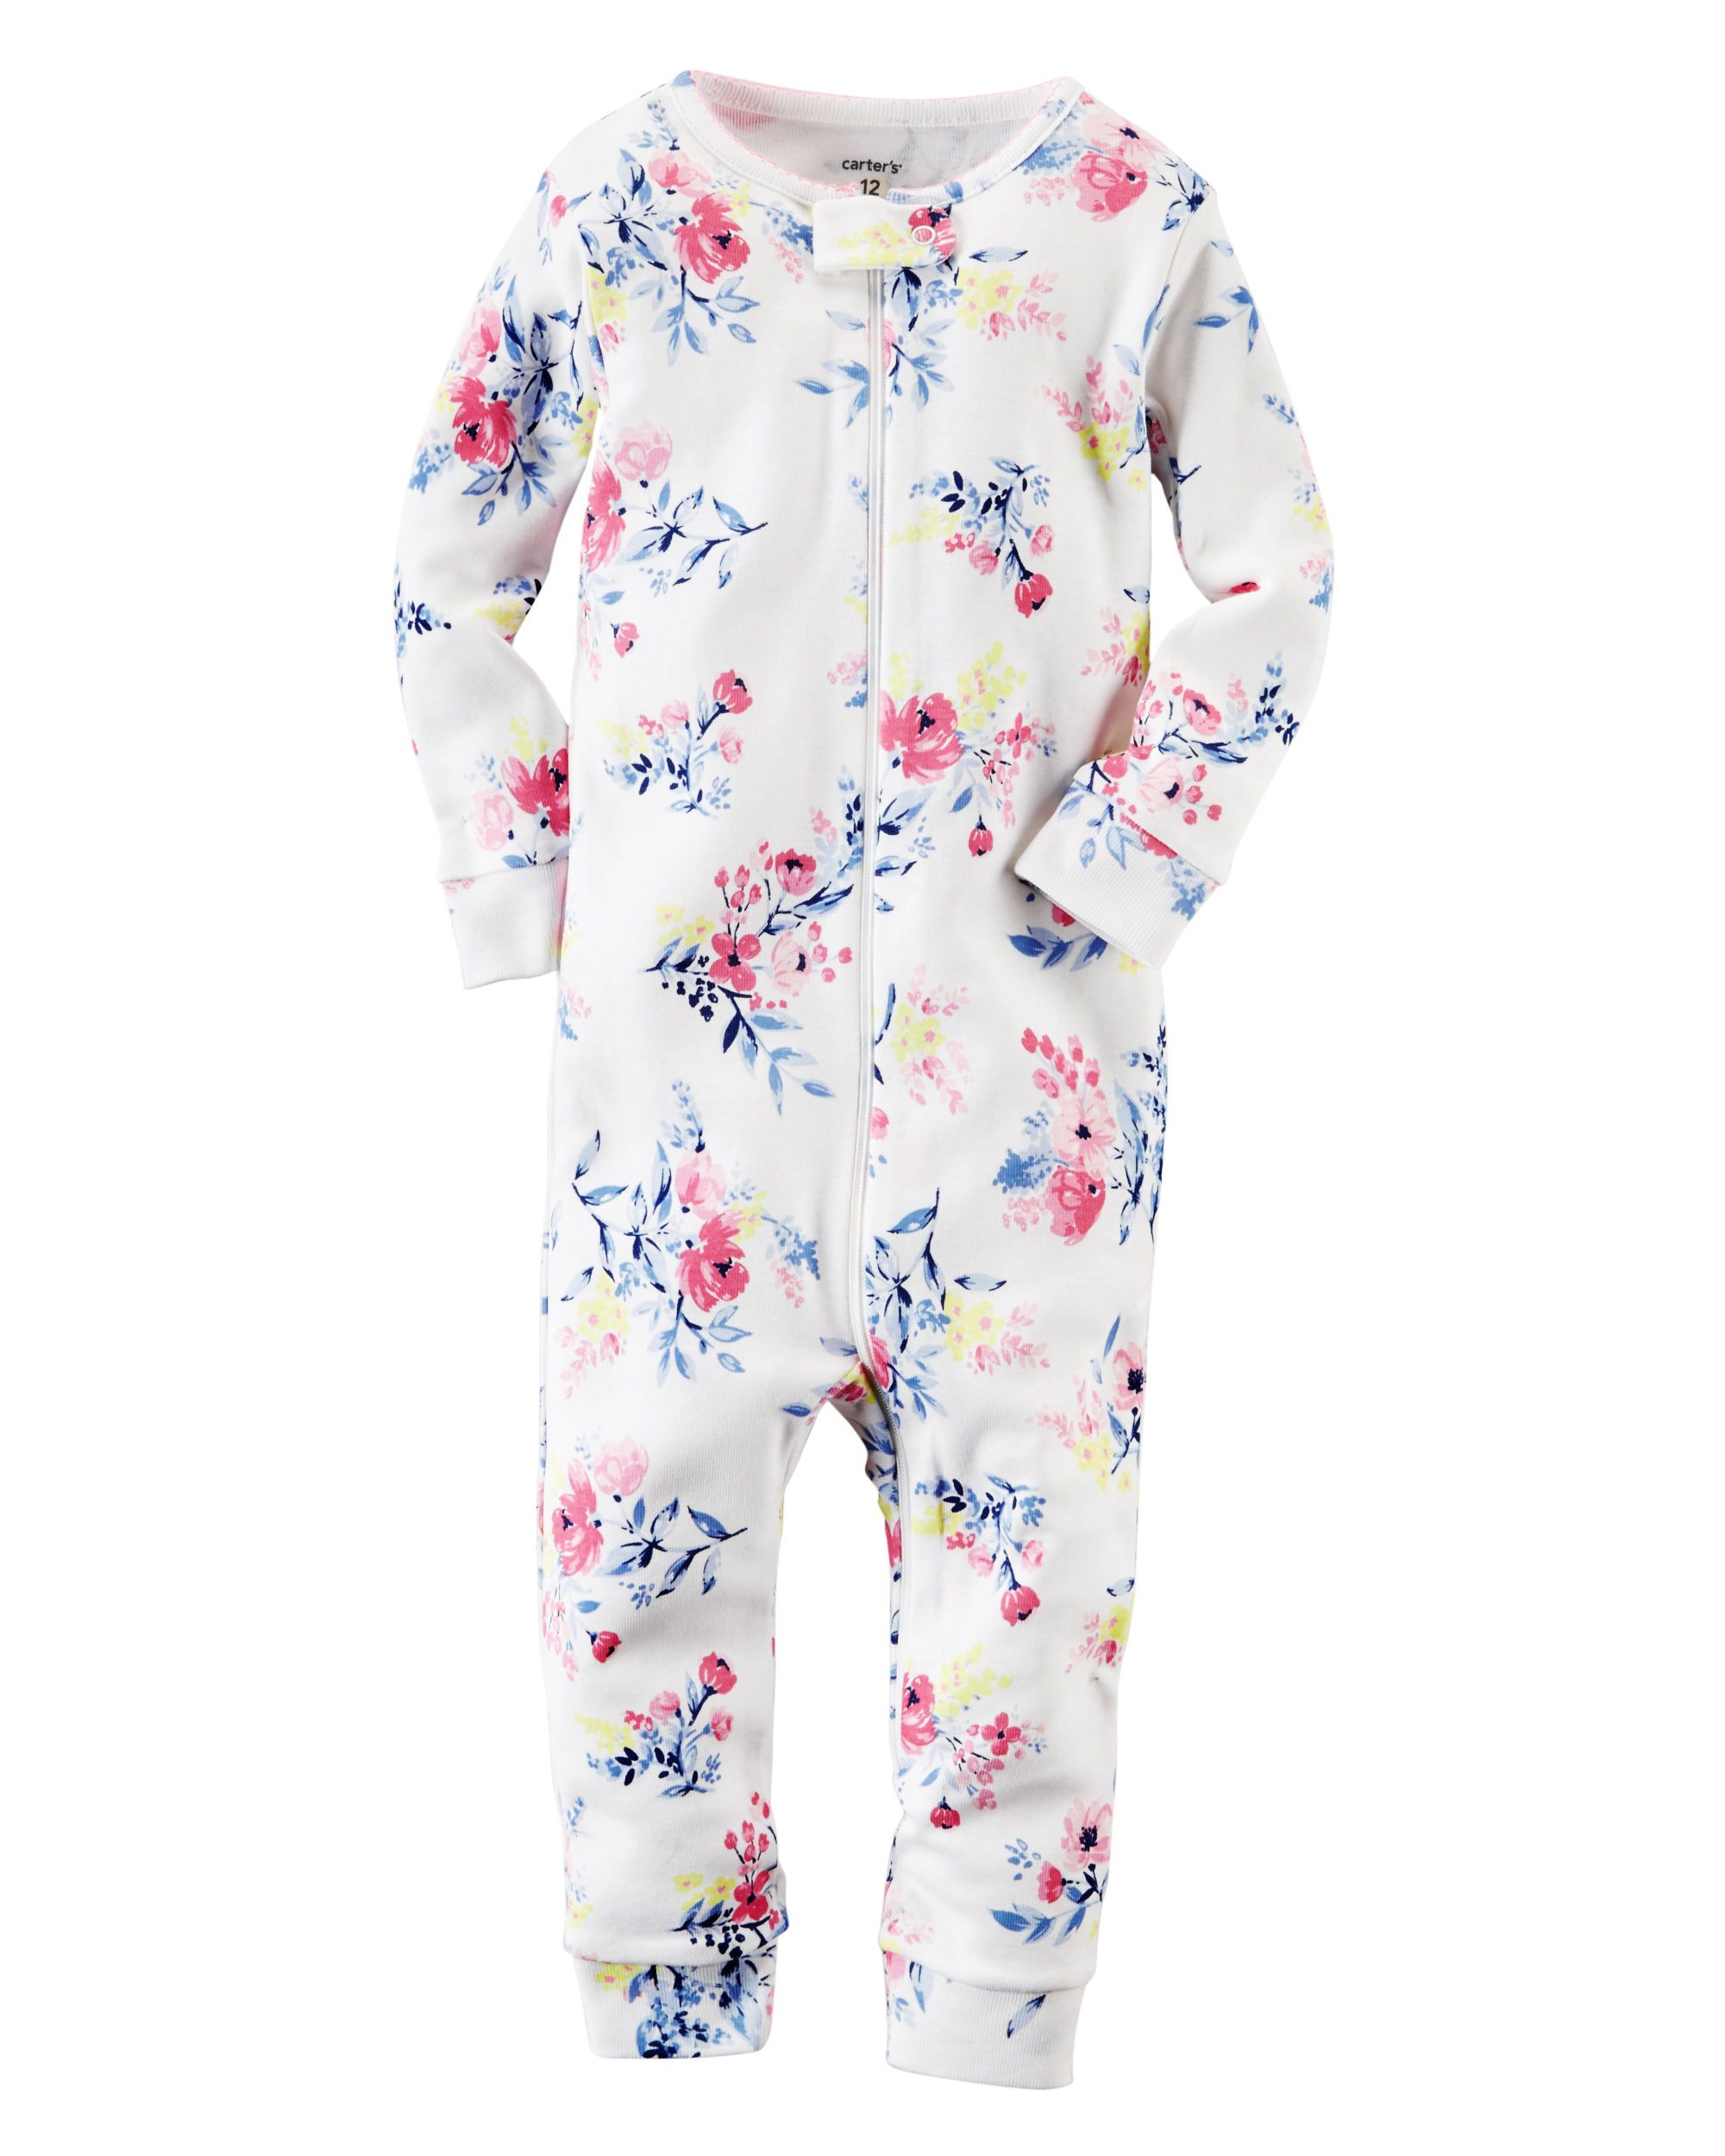 87bf8f3c0142 Toddler Girl 1-Piece Snug Fit Footless Cotton PJs